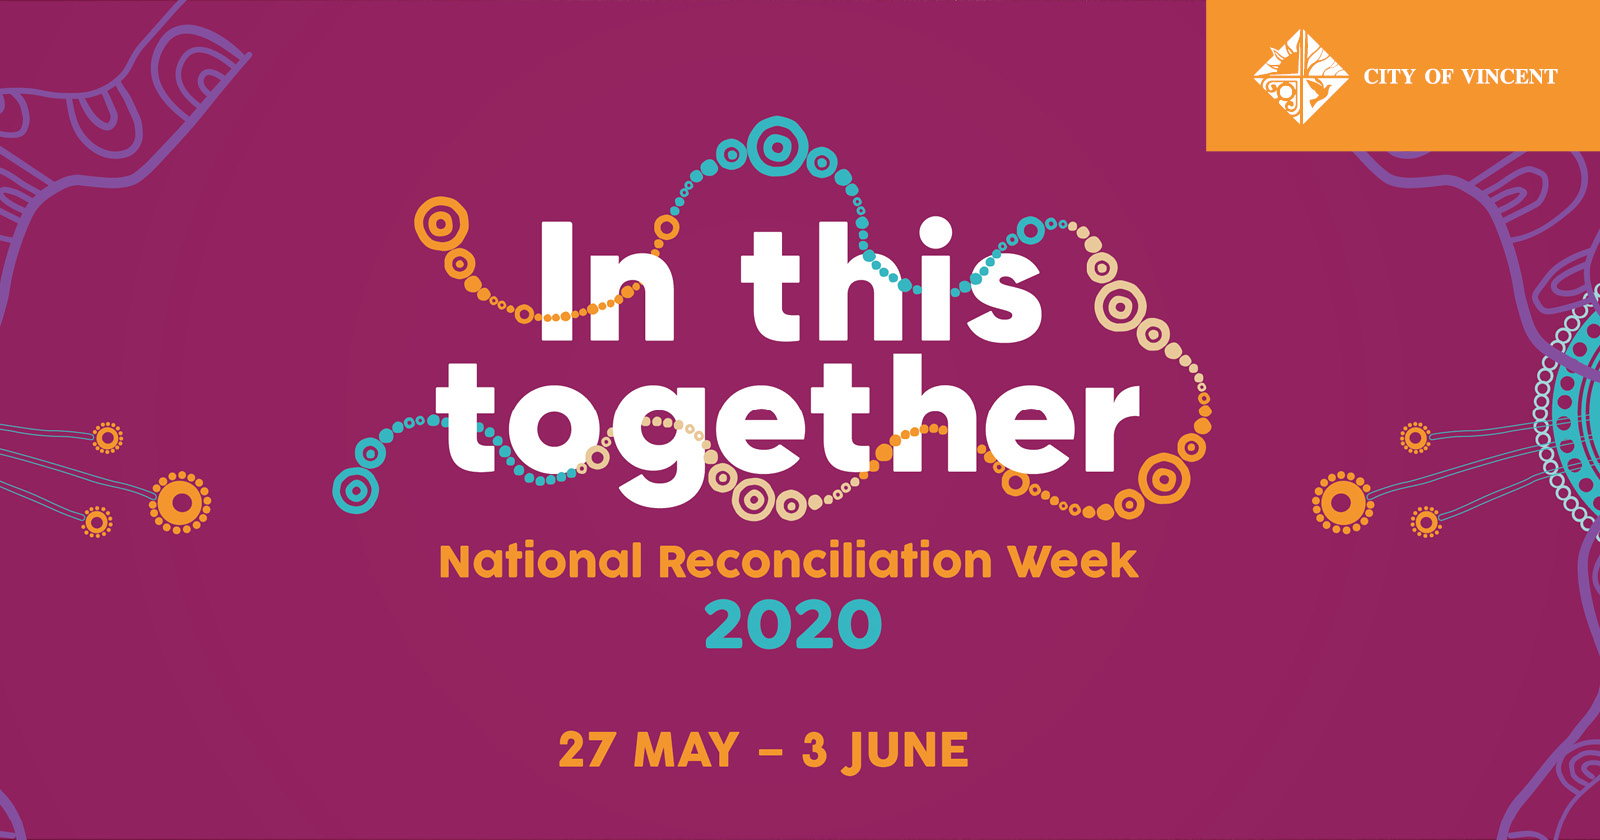 Unite for National Reconciliation Week